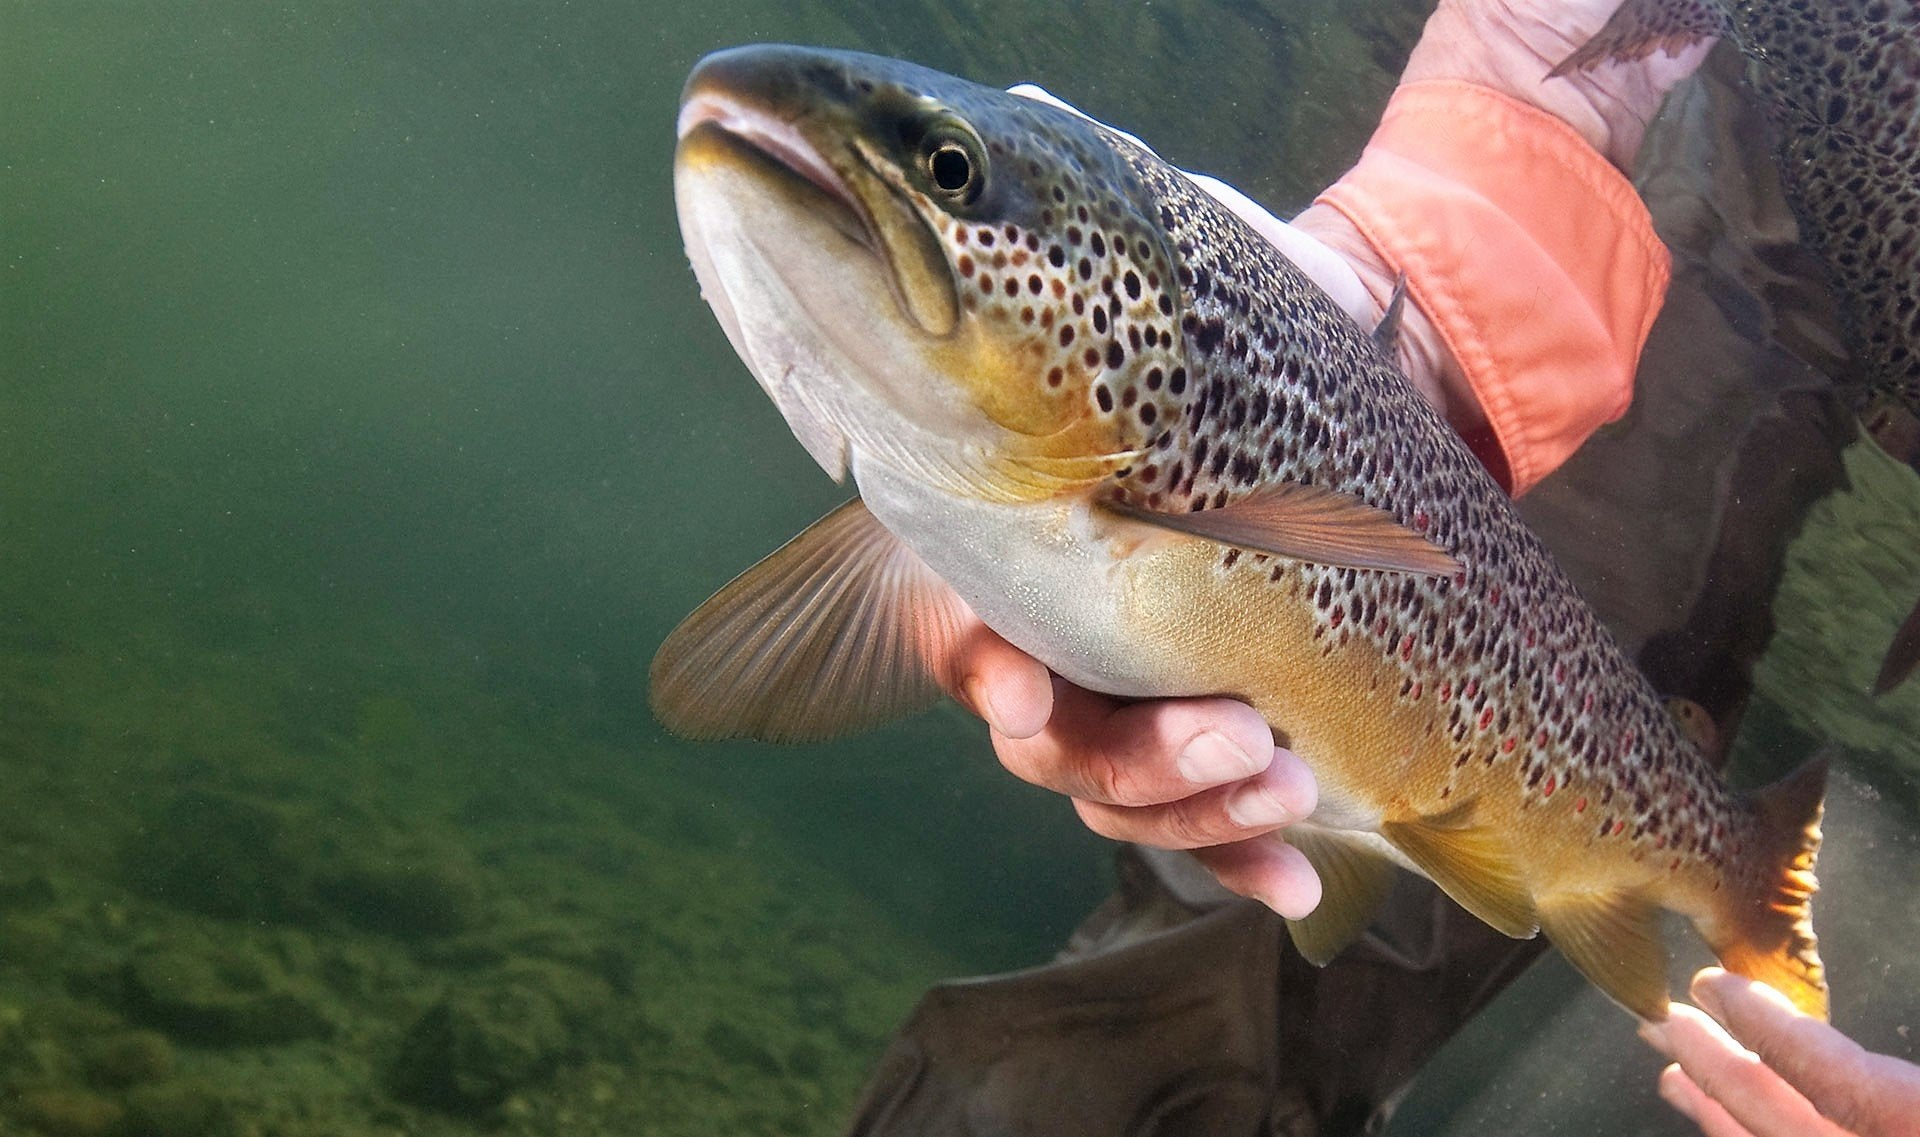 Spey Casting & Fly Fishing lessons